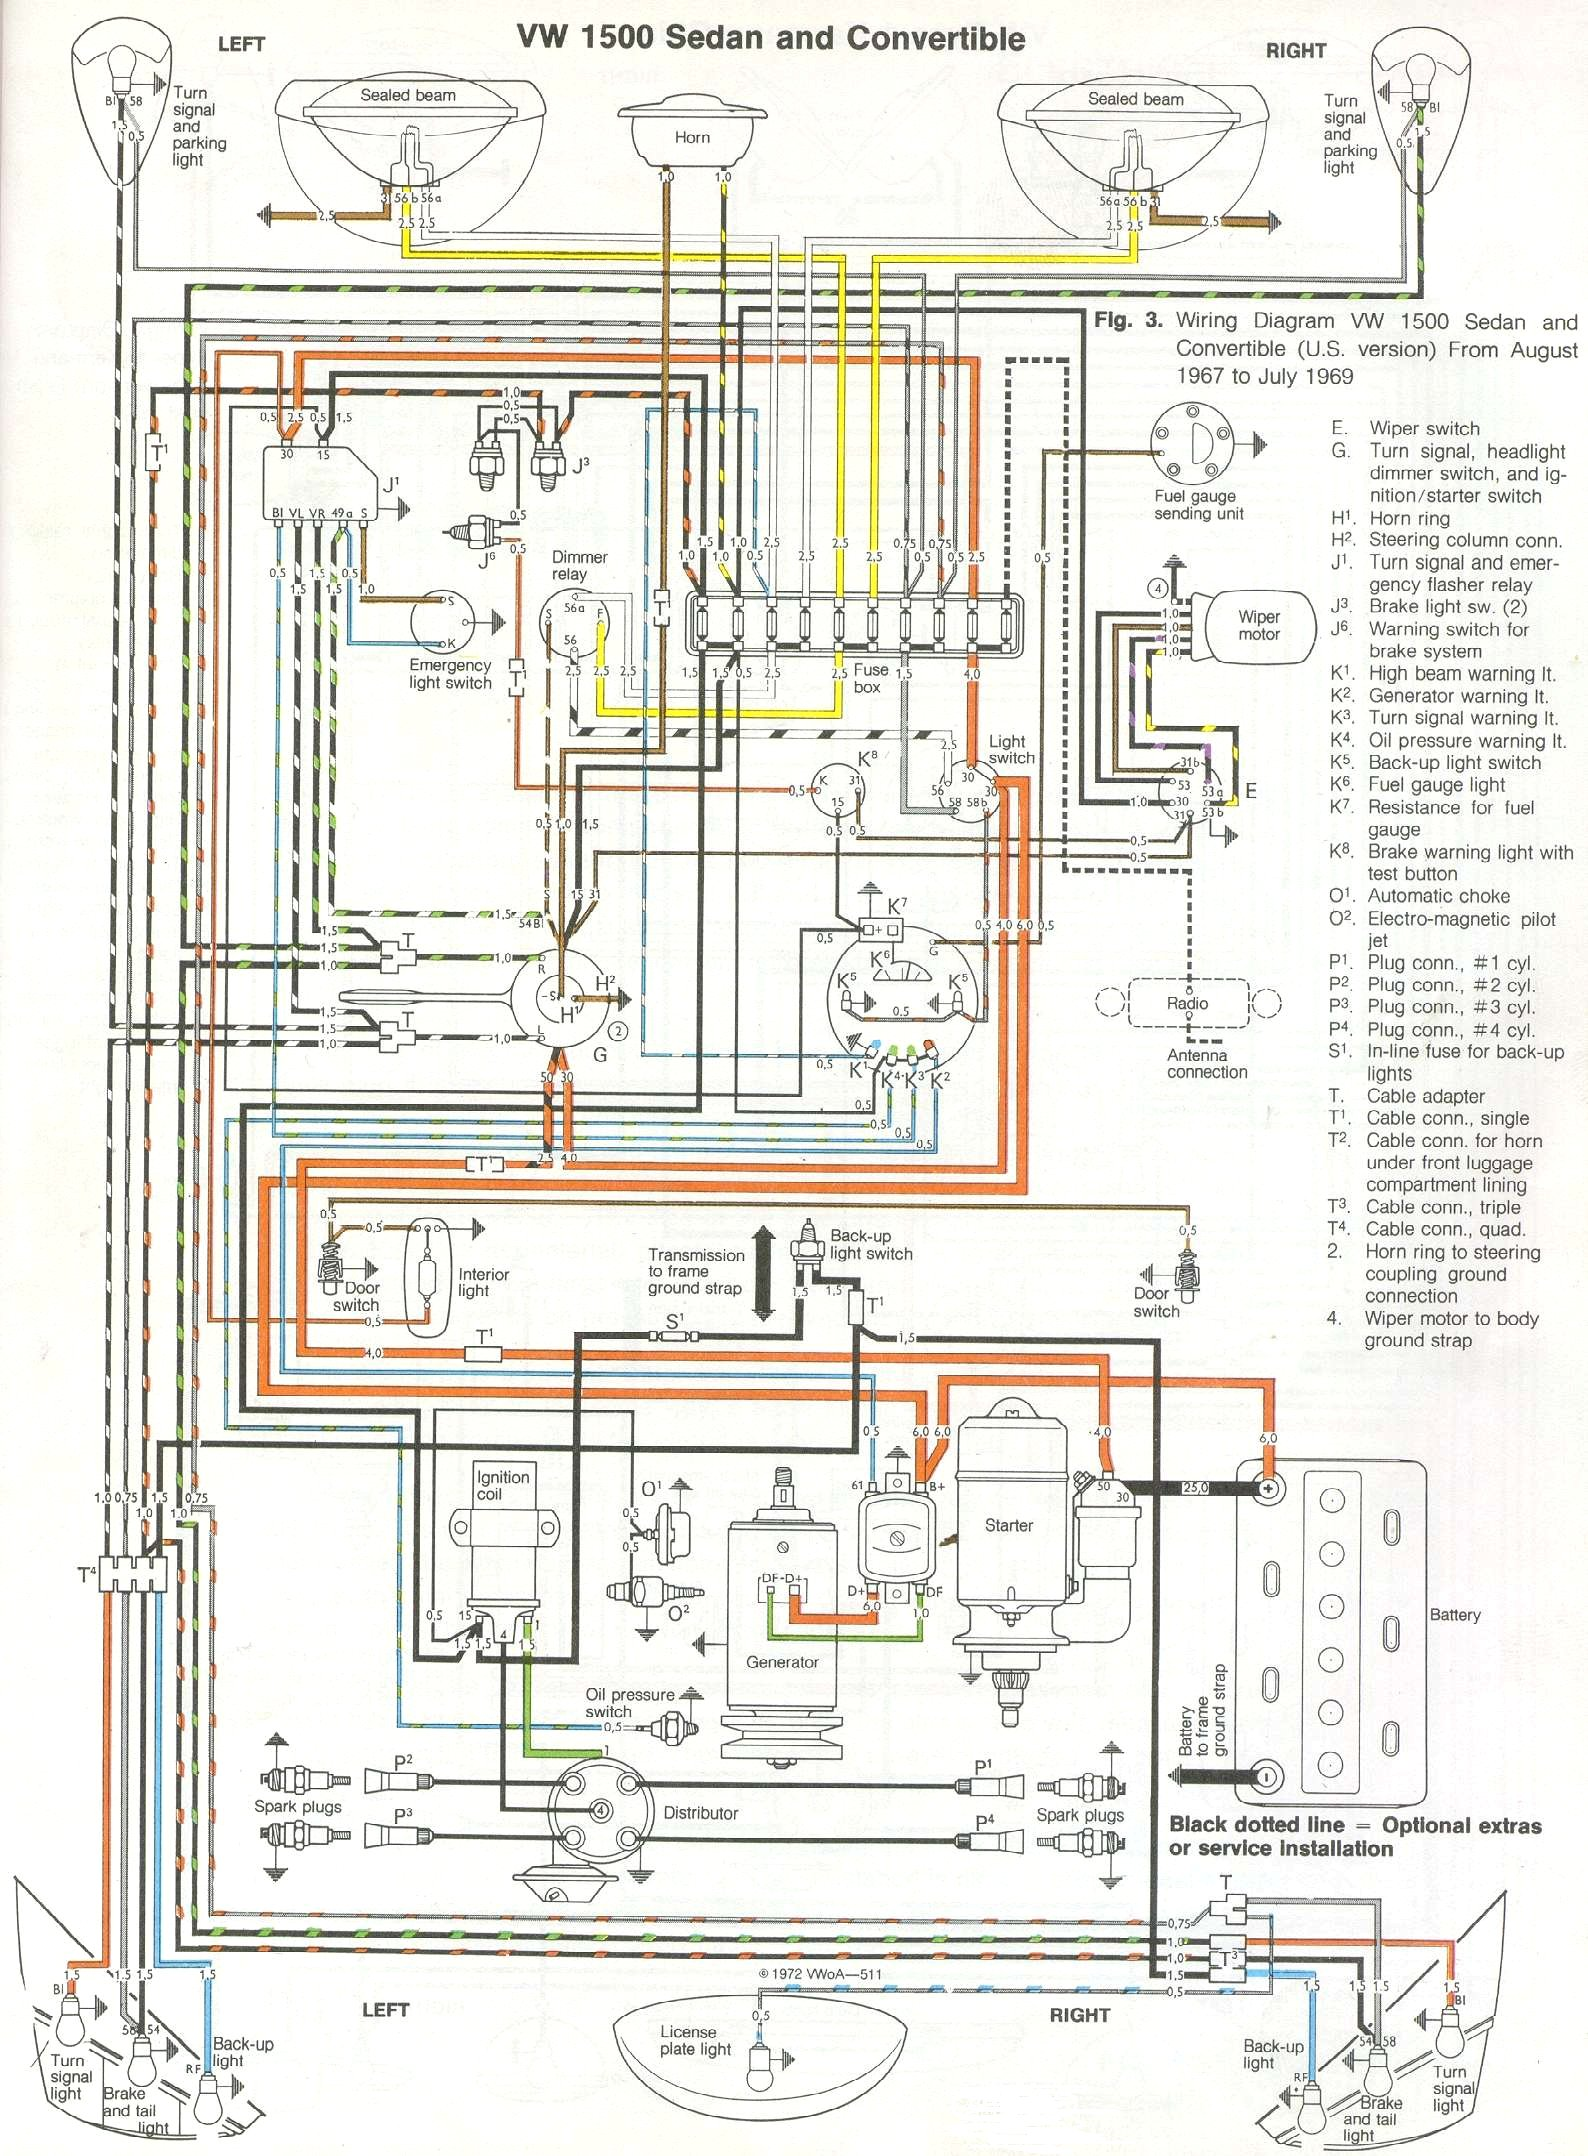 bug_6869 vw wiring harness diagram cj7 wiring harness diagram \u2022 wiring Wiring Harness Diagram at sewacar.co